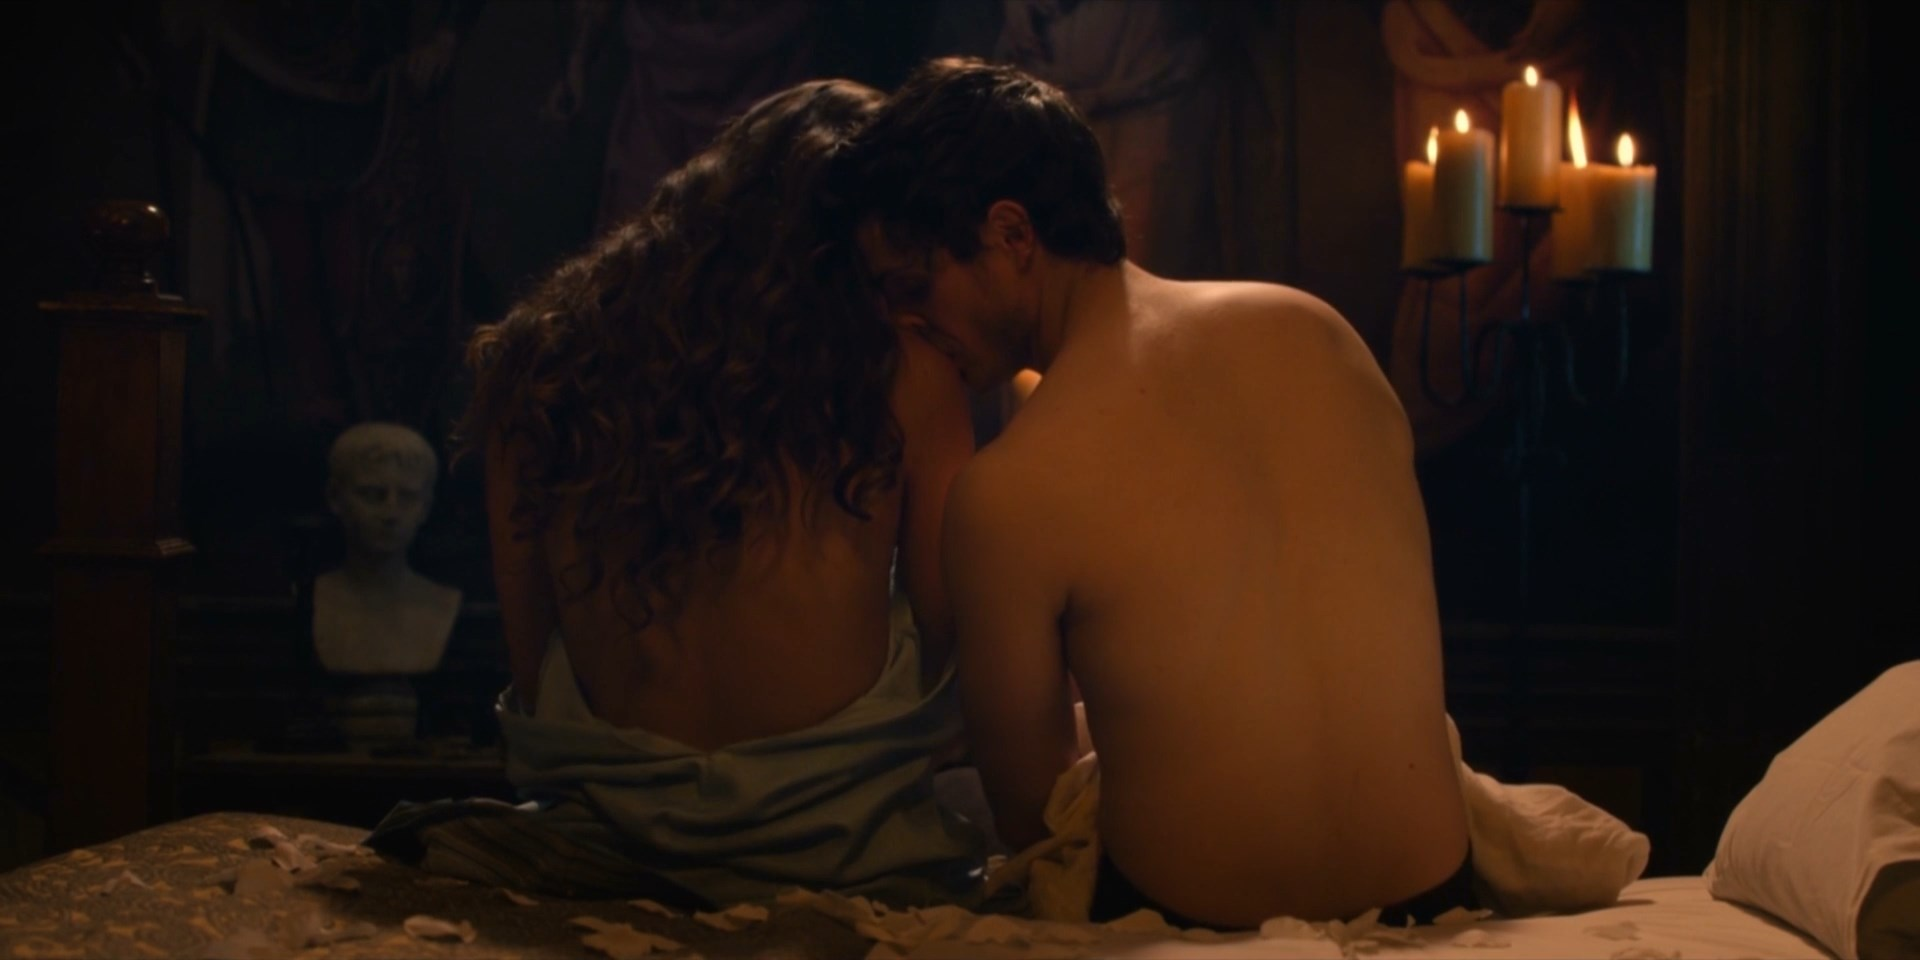 Synnove Karlsen nude - Medici Masters of Florence s02e03 (2018)